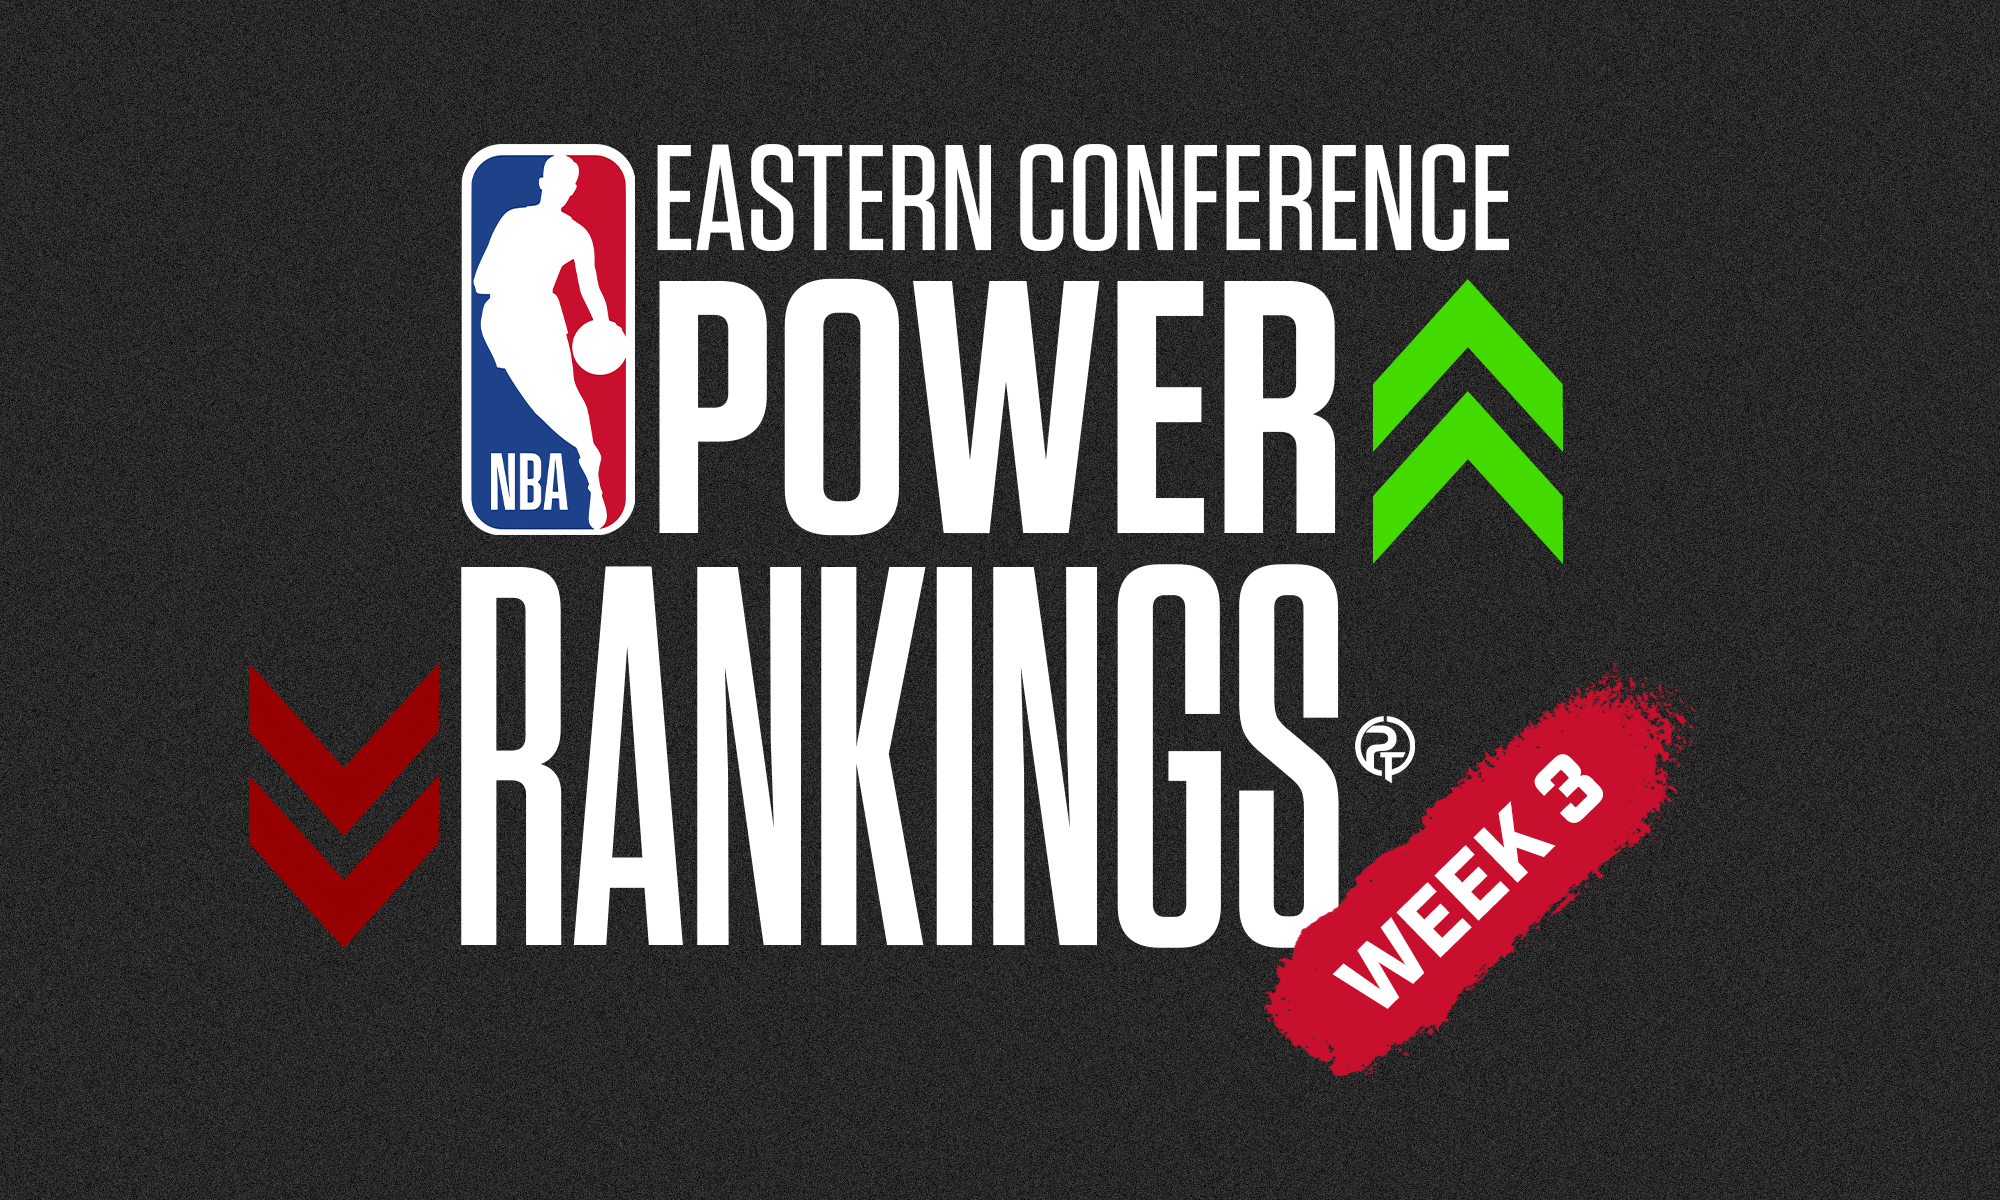 2020-21 NBA Eastern Conference Power Rankings: Week 3